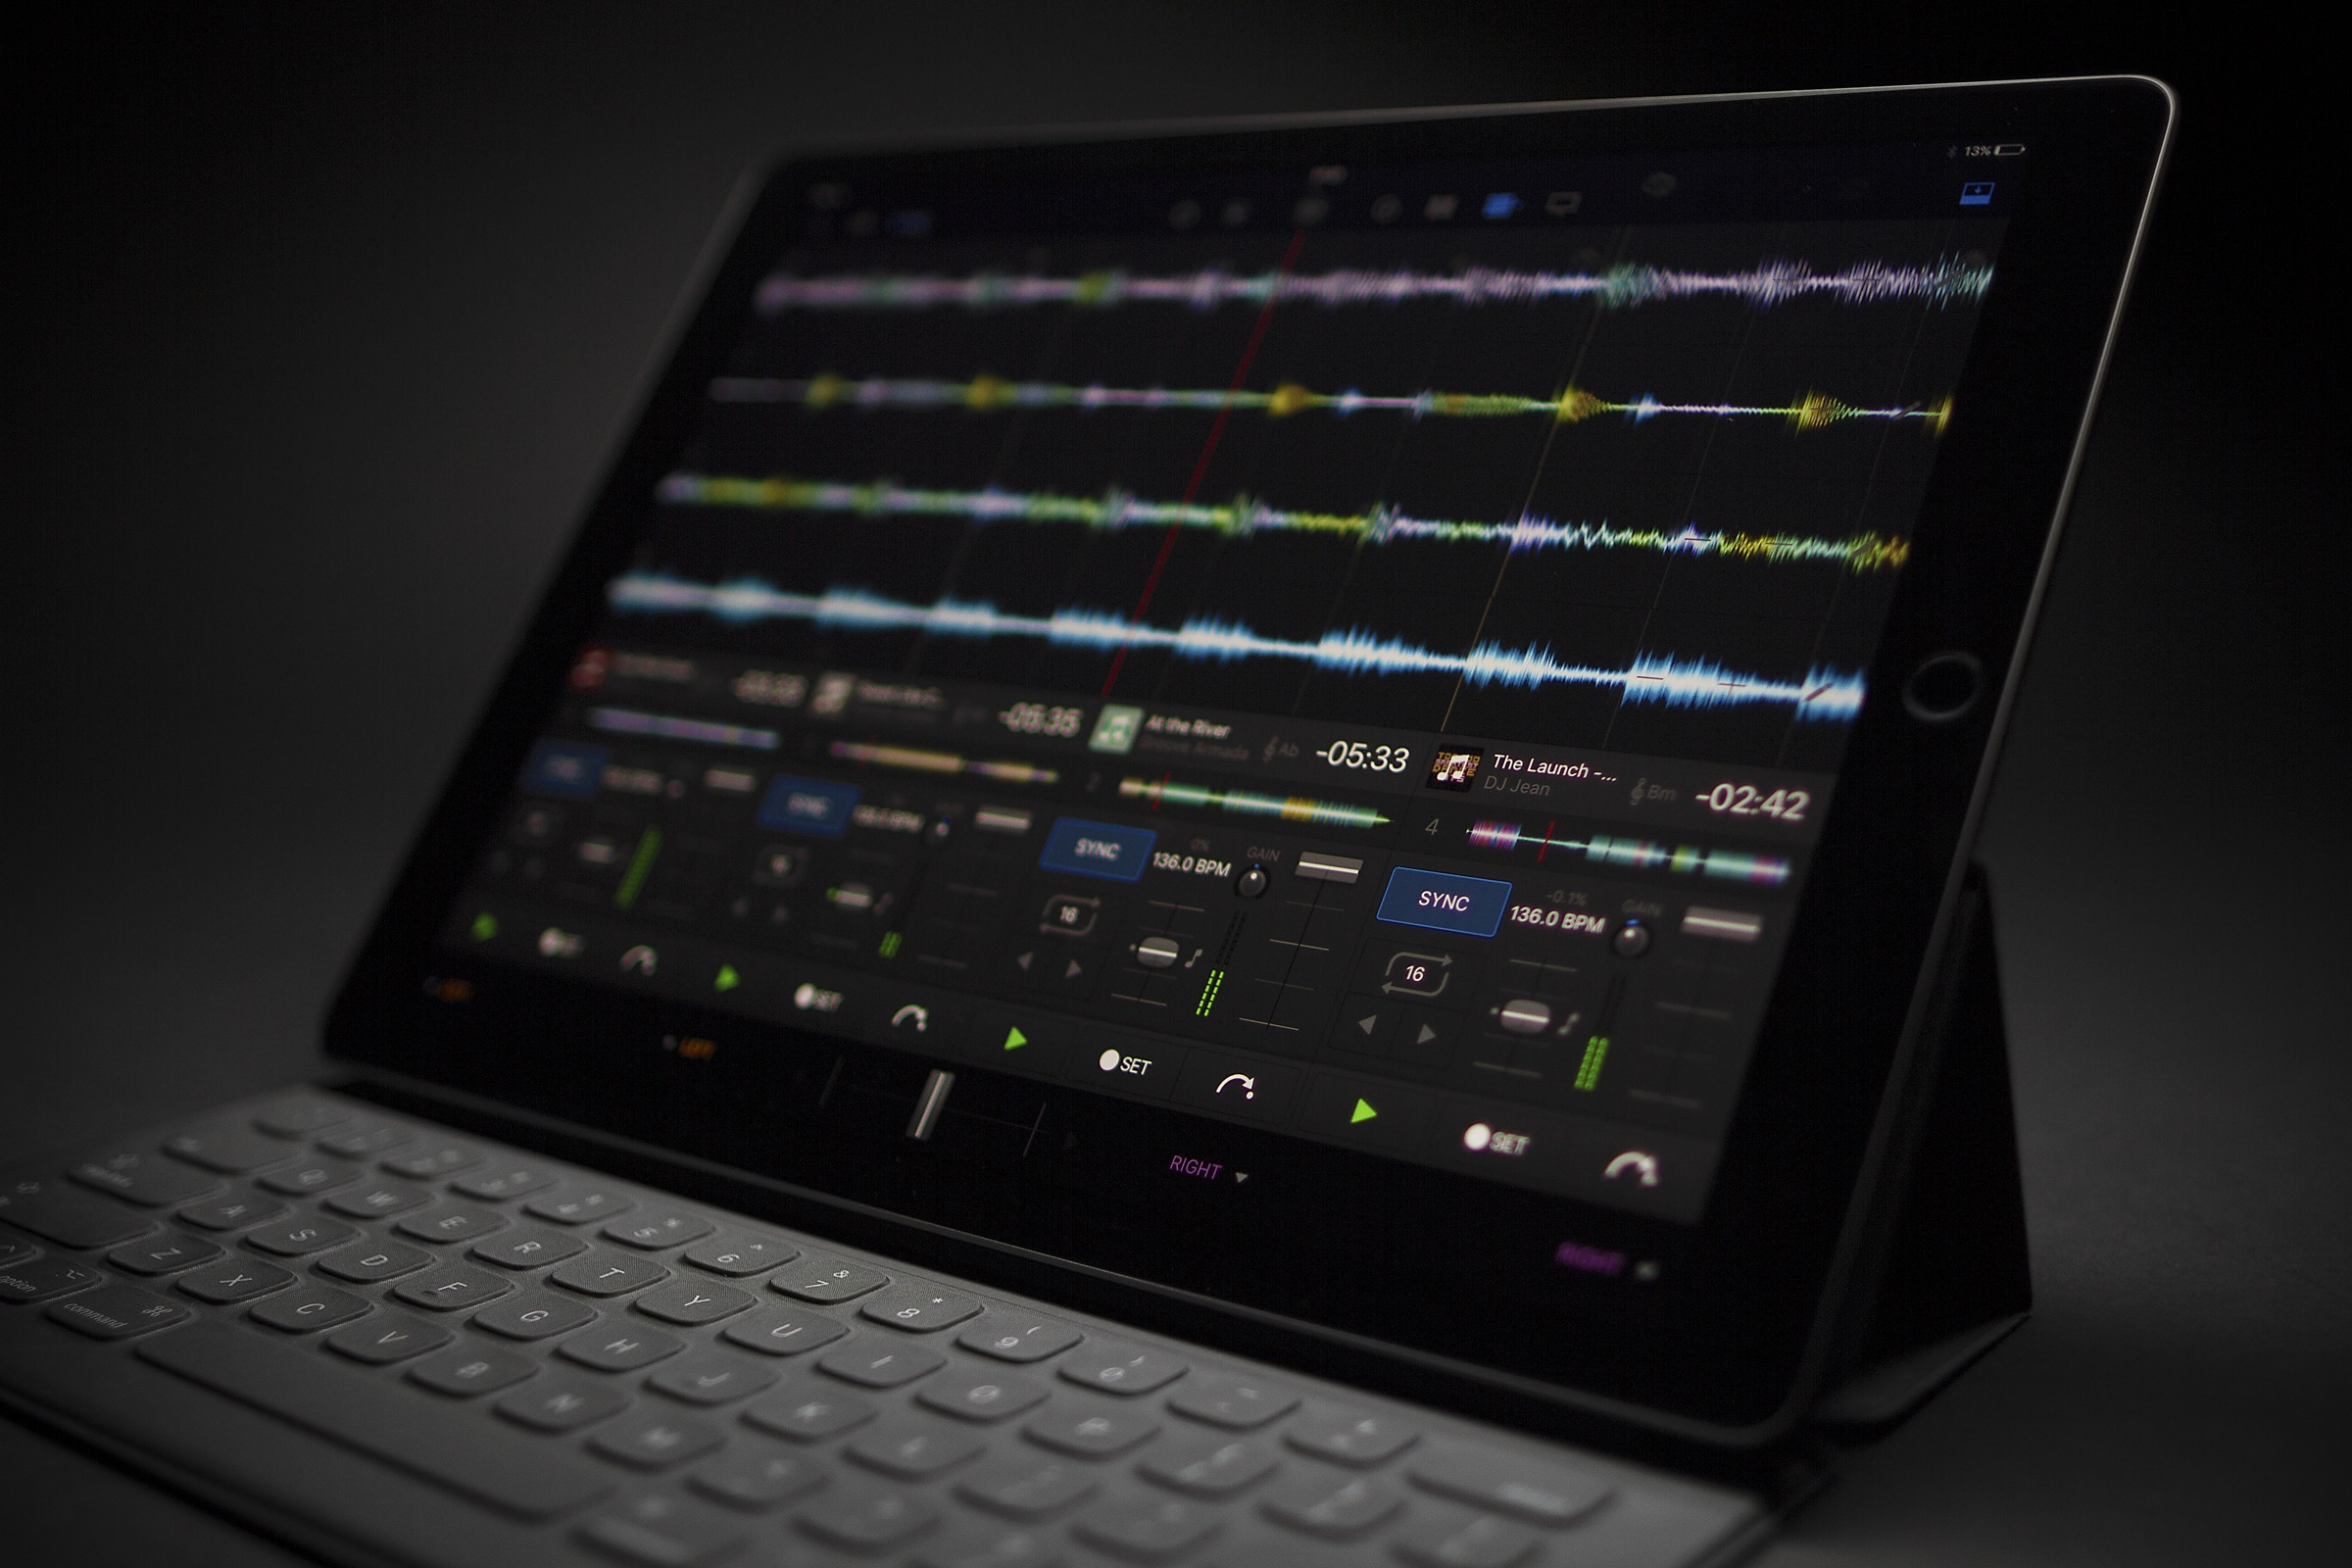 djay Pro could be the iPad Pro's first killer music and VJ